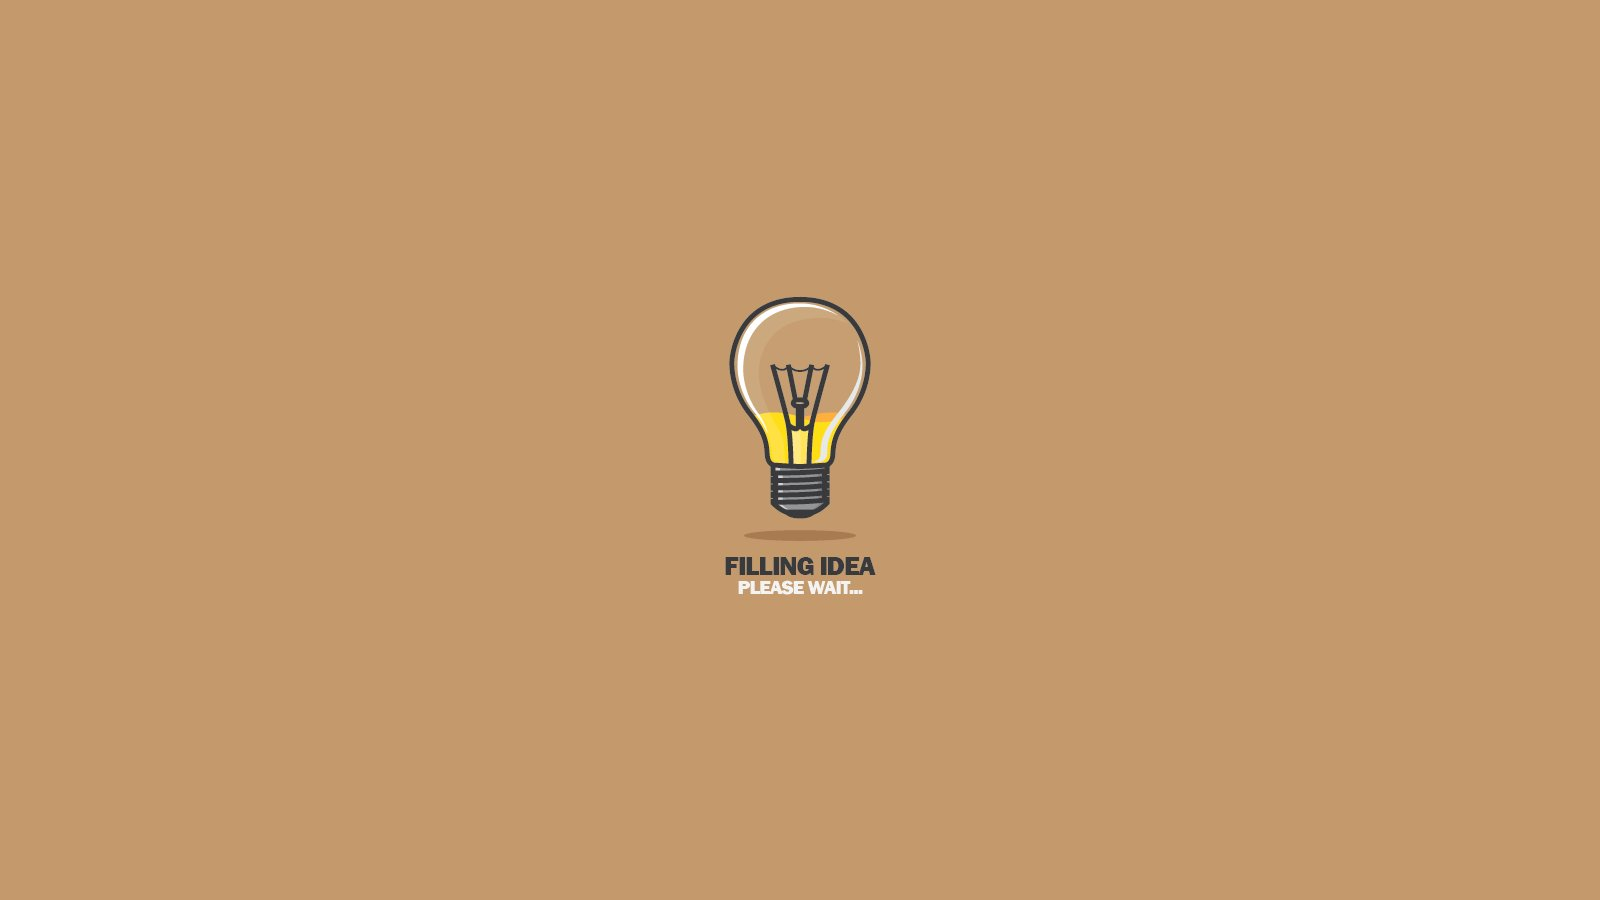 Lightbulb idea wallpaper 1600x900 360324 wallpaperup for Easy wallpaper ideas